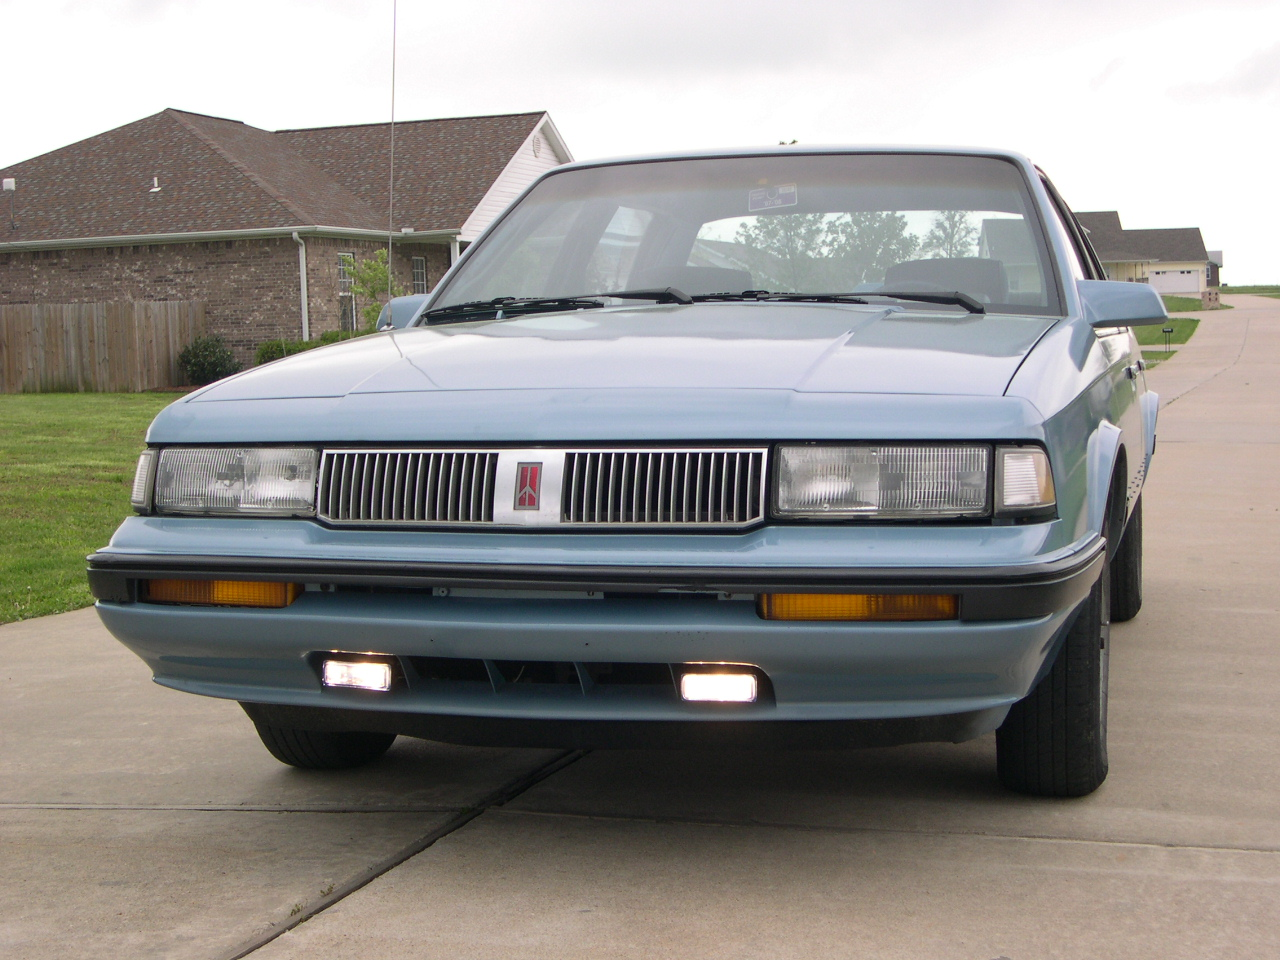 1990 Oldsmobile Cutlass Ciera - Pictures - Picture of 1990 Oldsmobile ...